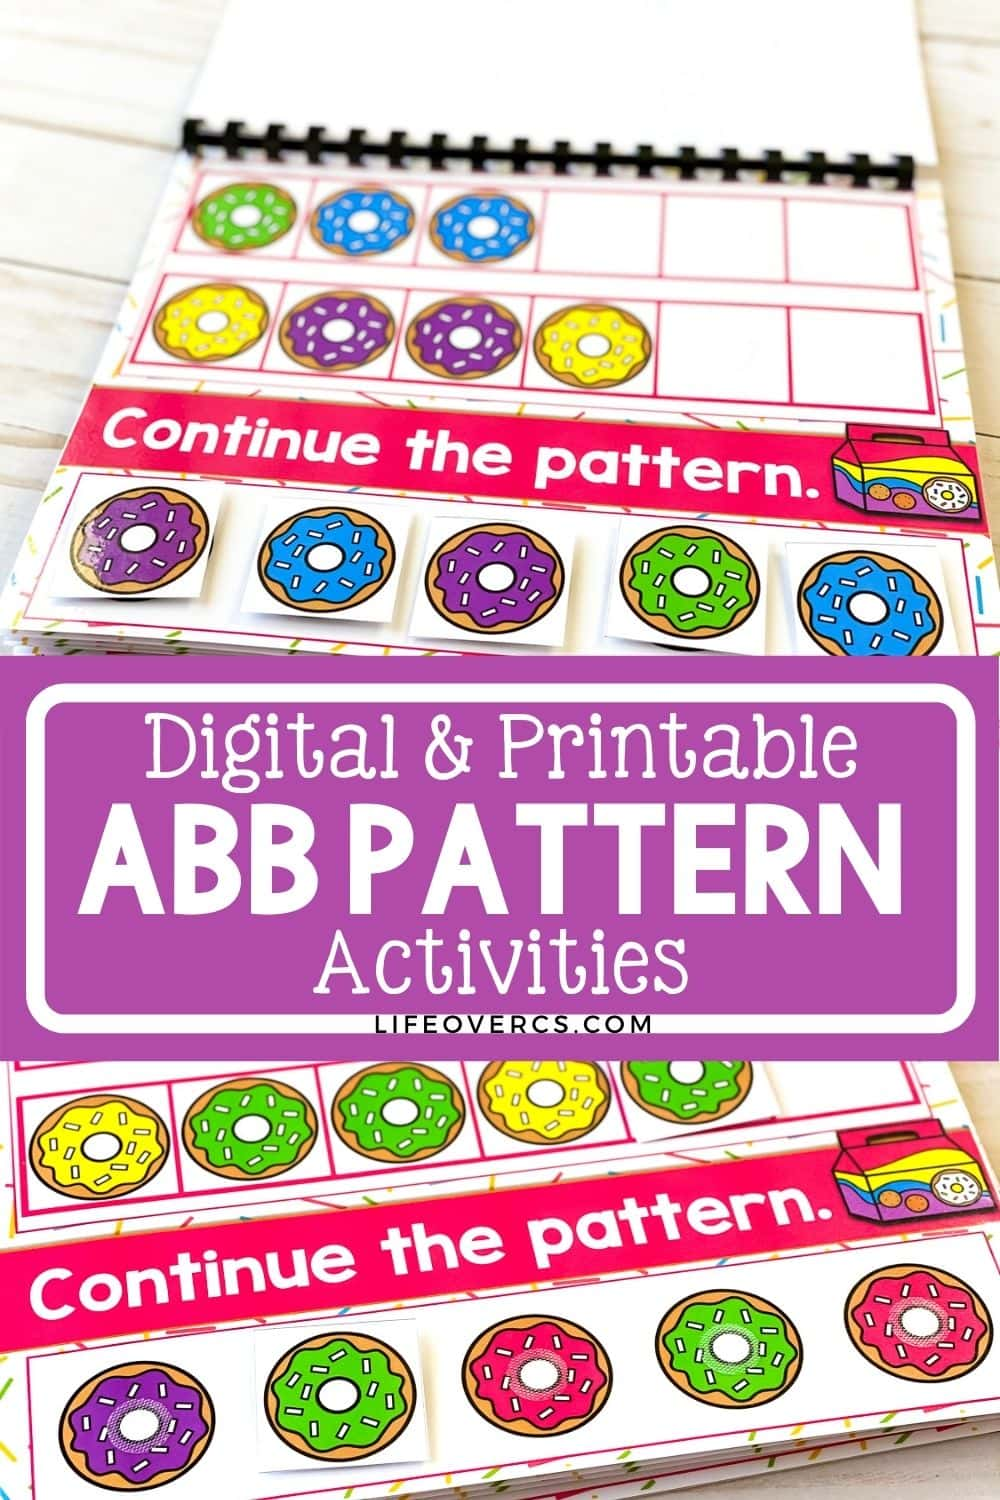 Digital and Printable ABB Pattern Activities